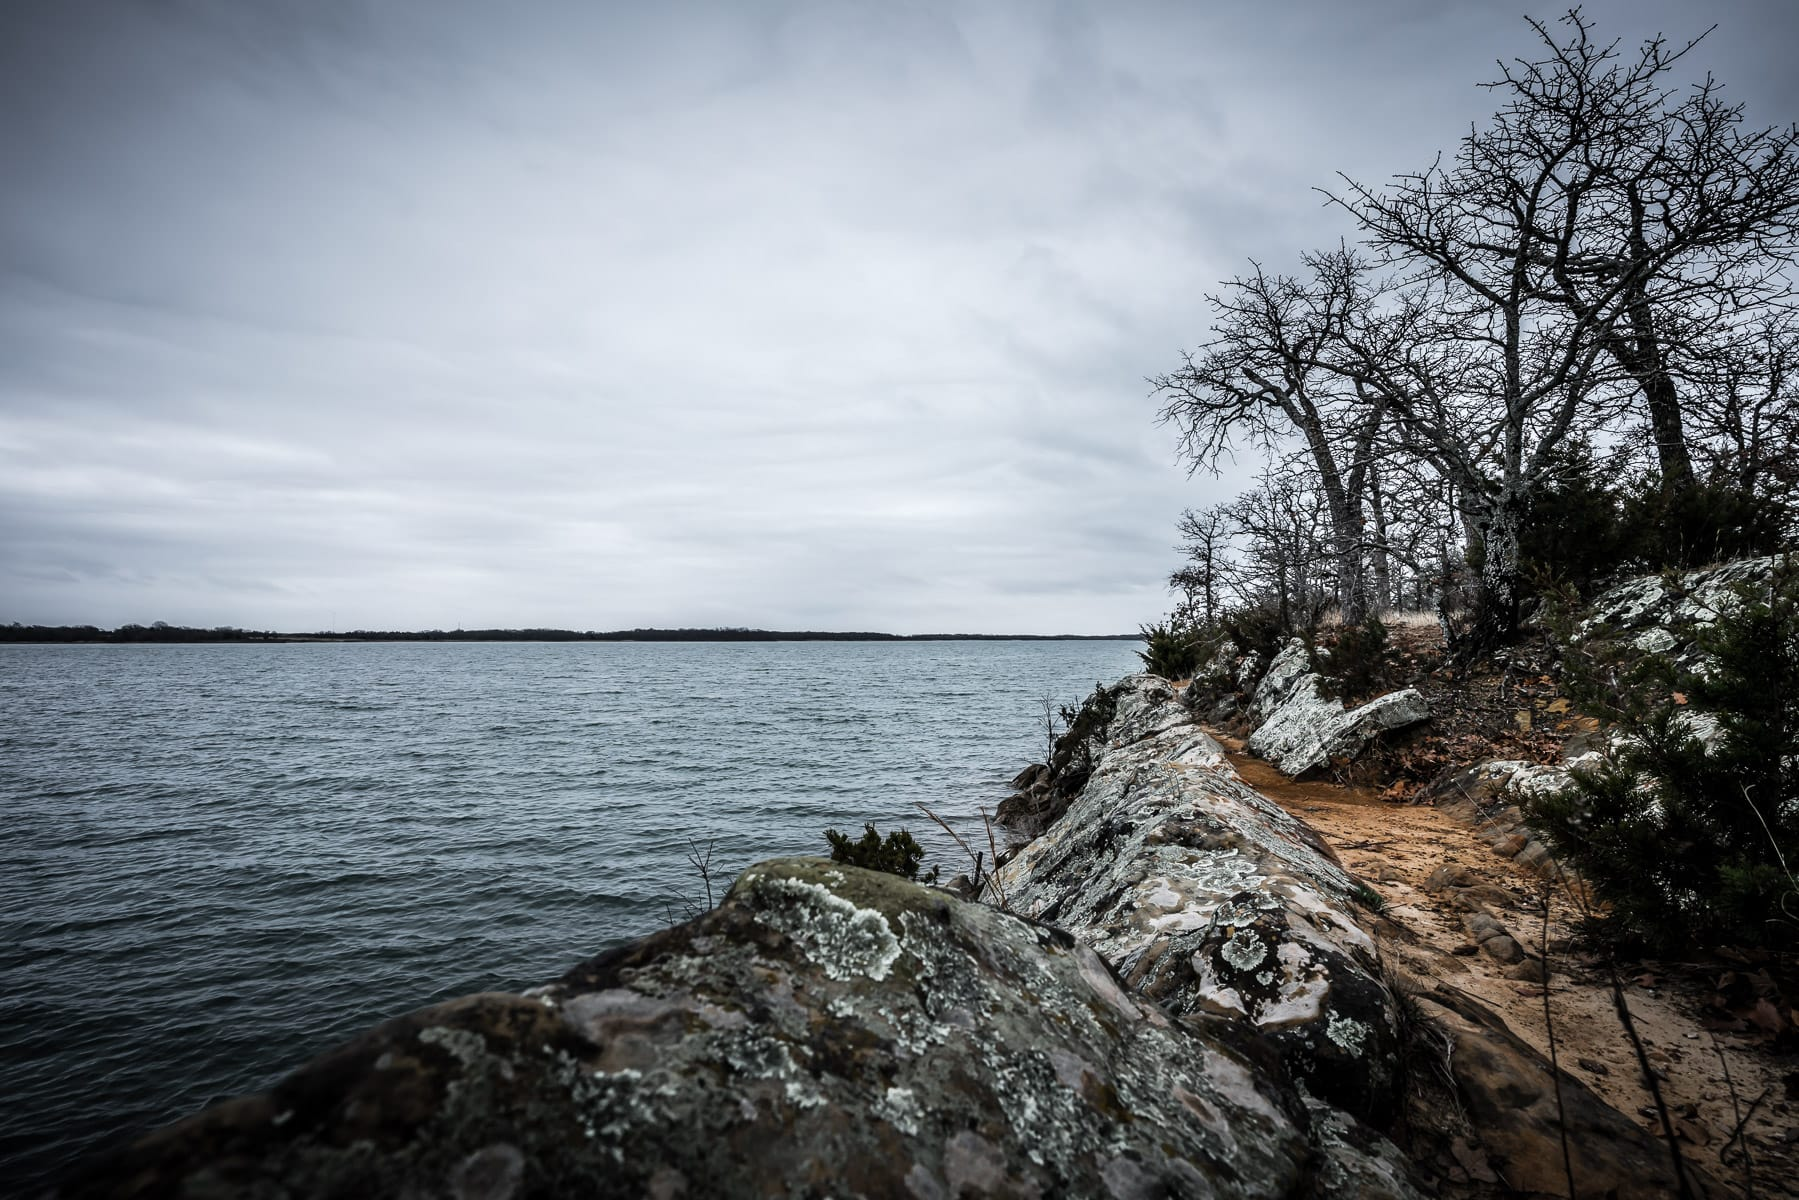 Trees and rocks on a dreary day at Oklahoma's Lake Murray State Park.